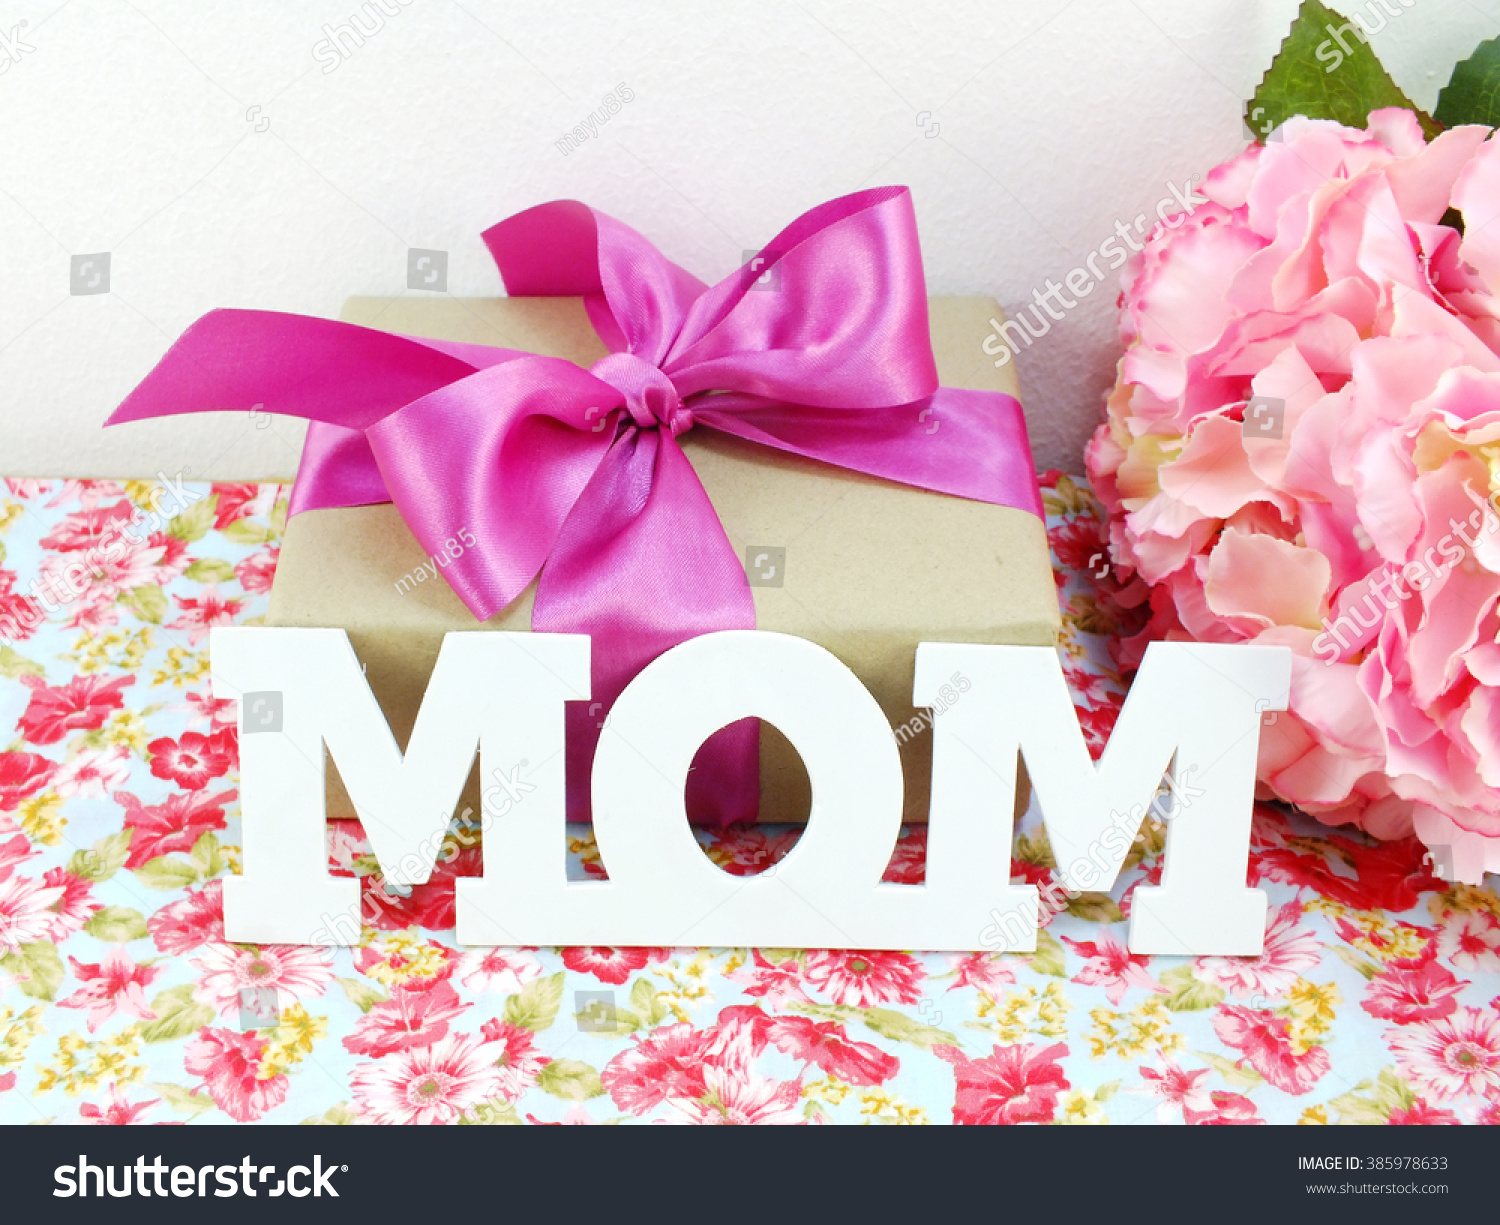 Gifts beautiful bouquet flowers mom mother stock photo royalty free gifts and beautiful bouquet of flowers for mom for mother day or birthday izmirmasajfo